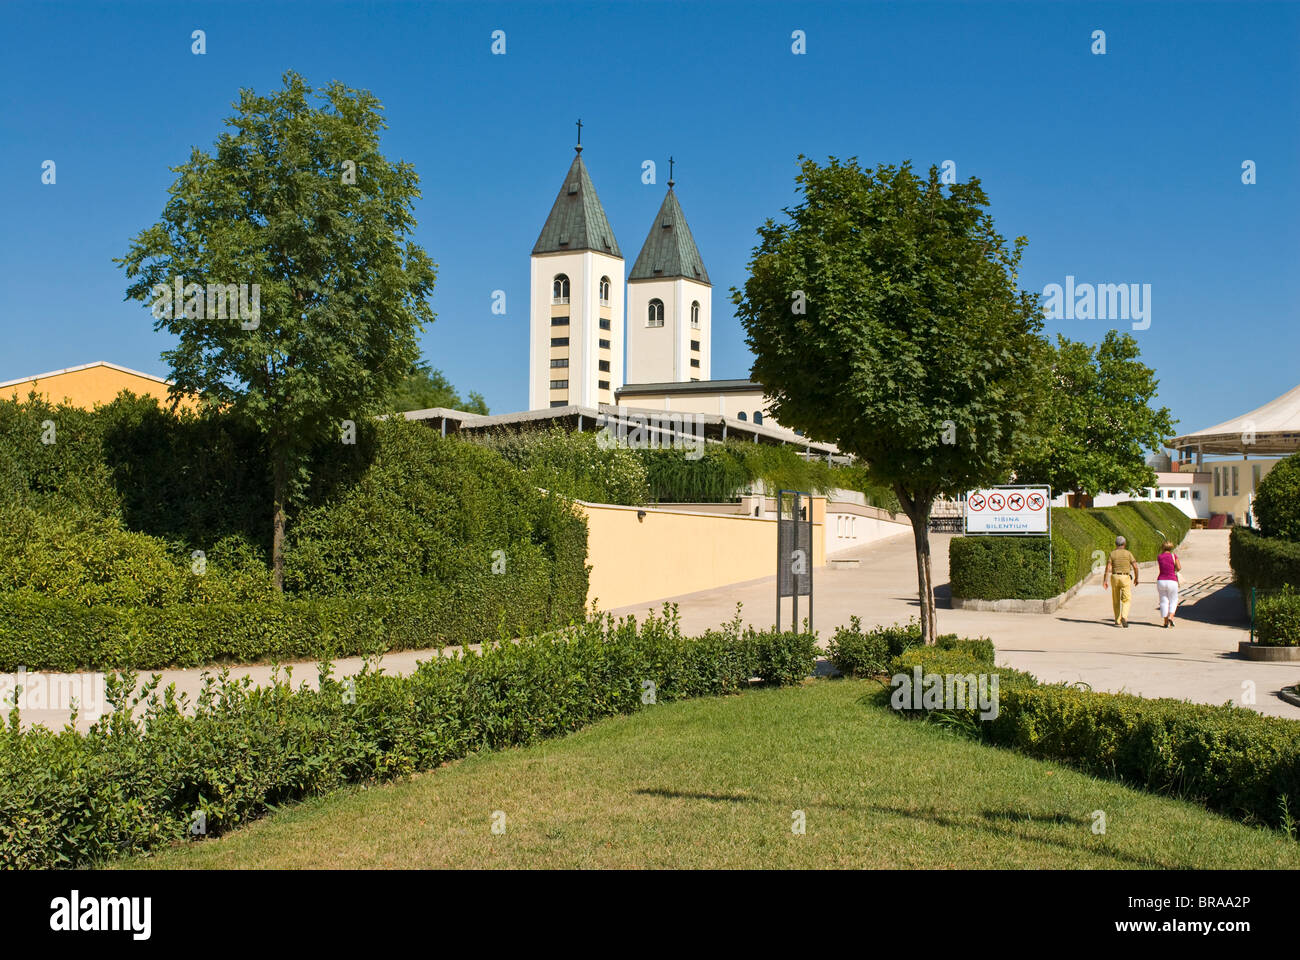 St. James Church in Medugorje, Bosnia-Herzegovina, Europe - Stock Image